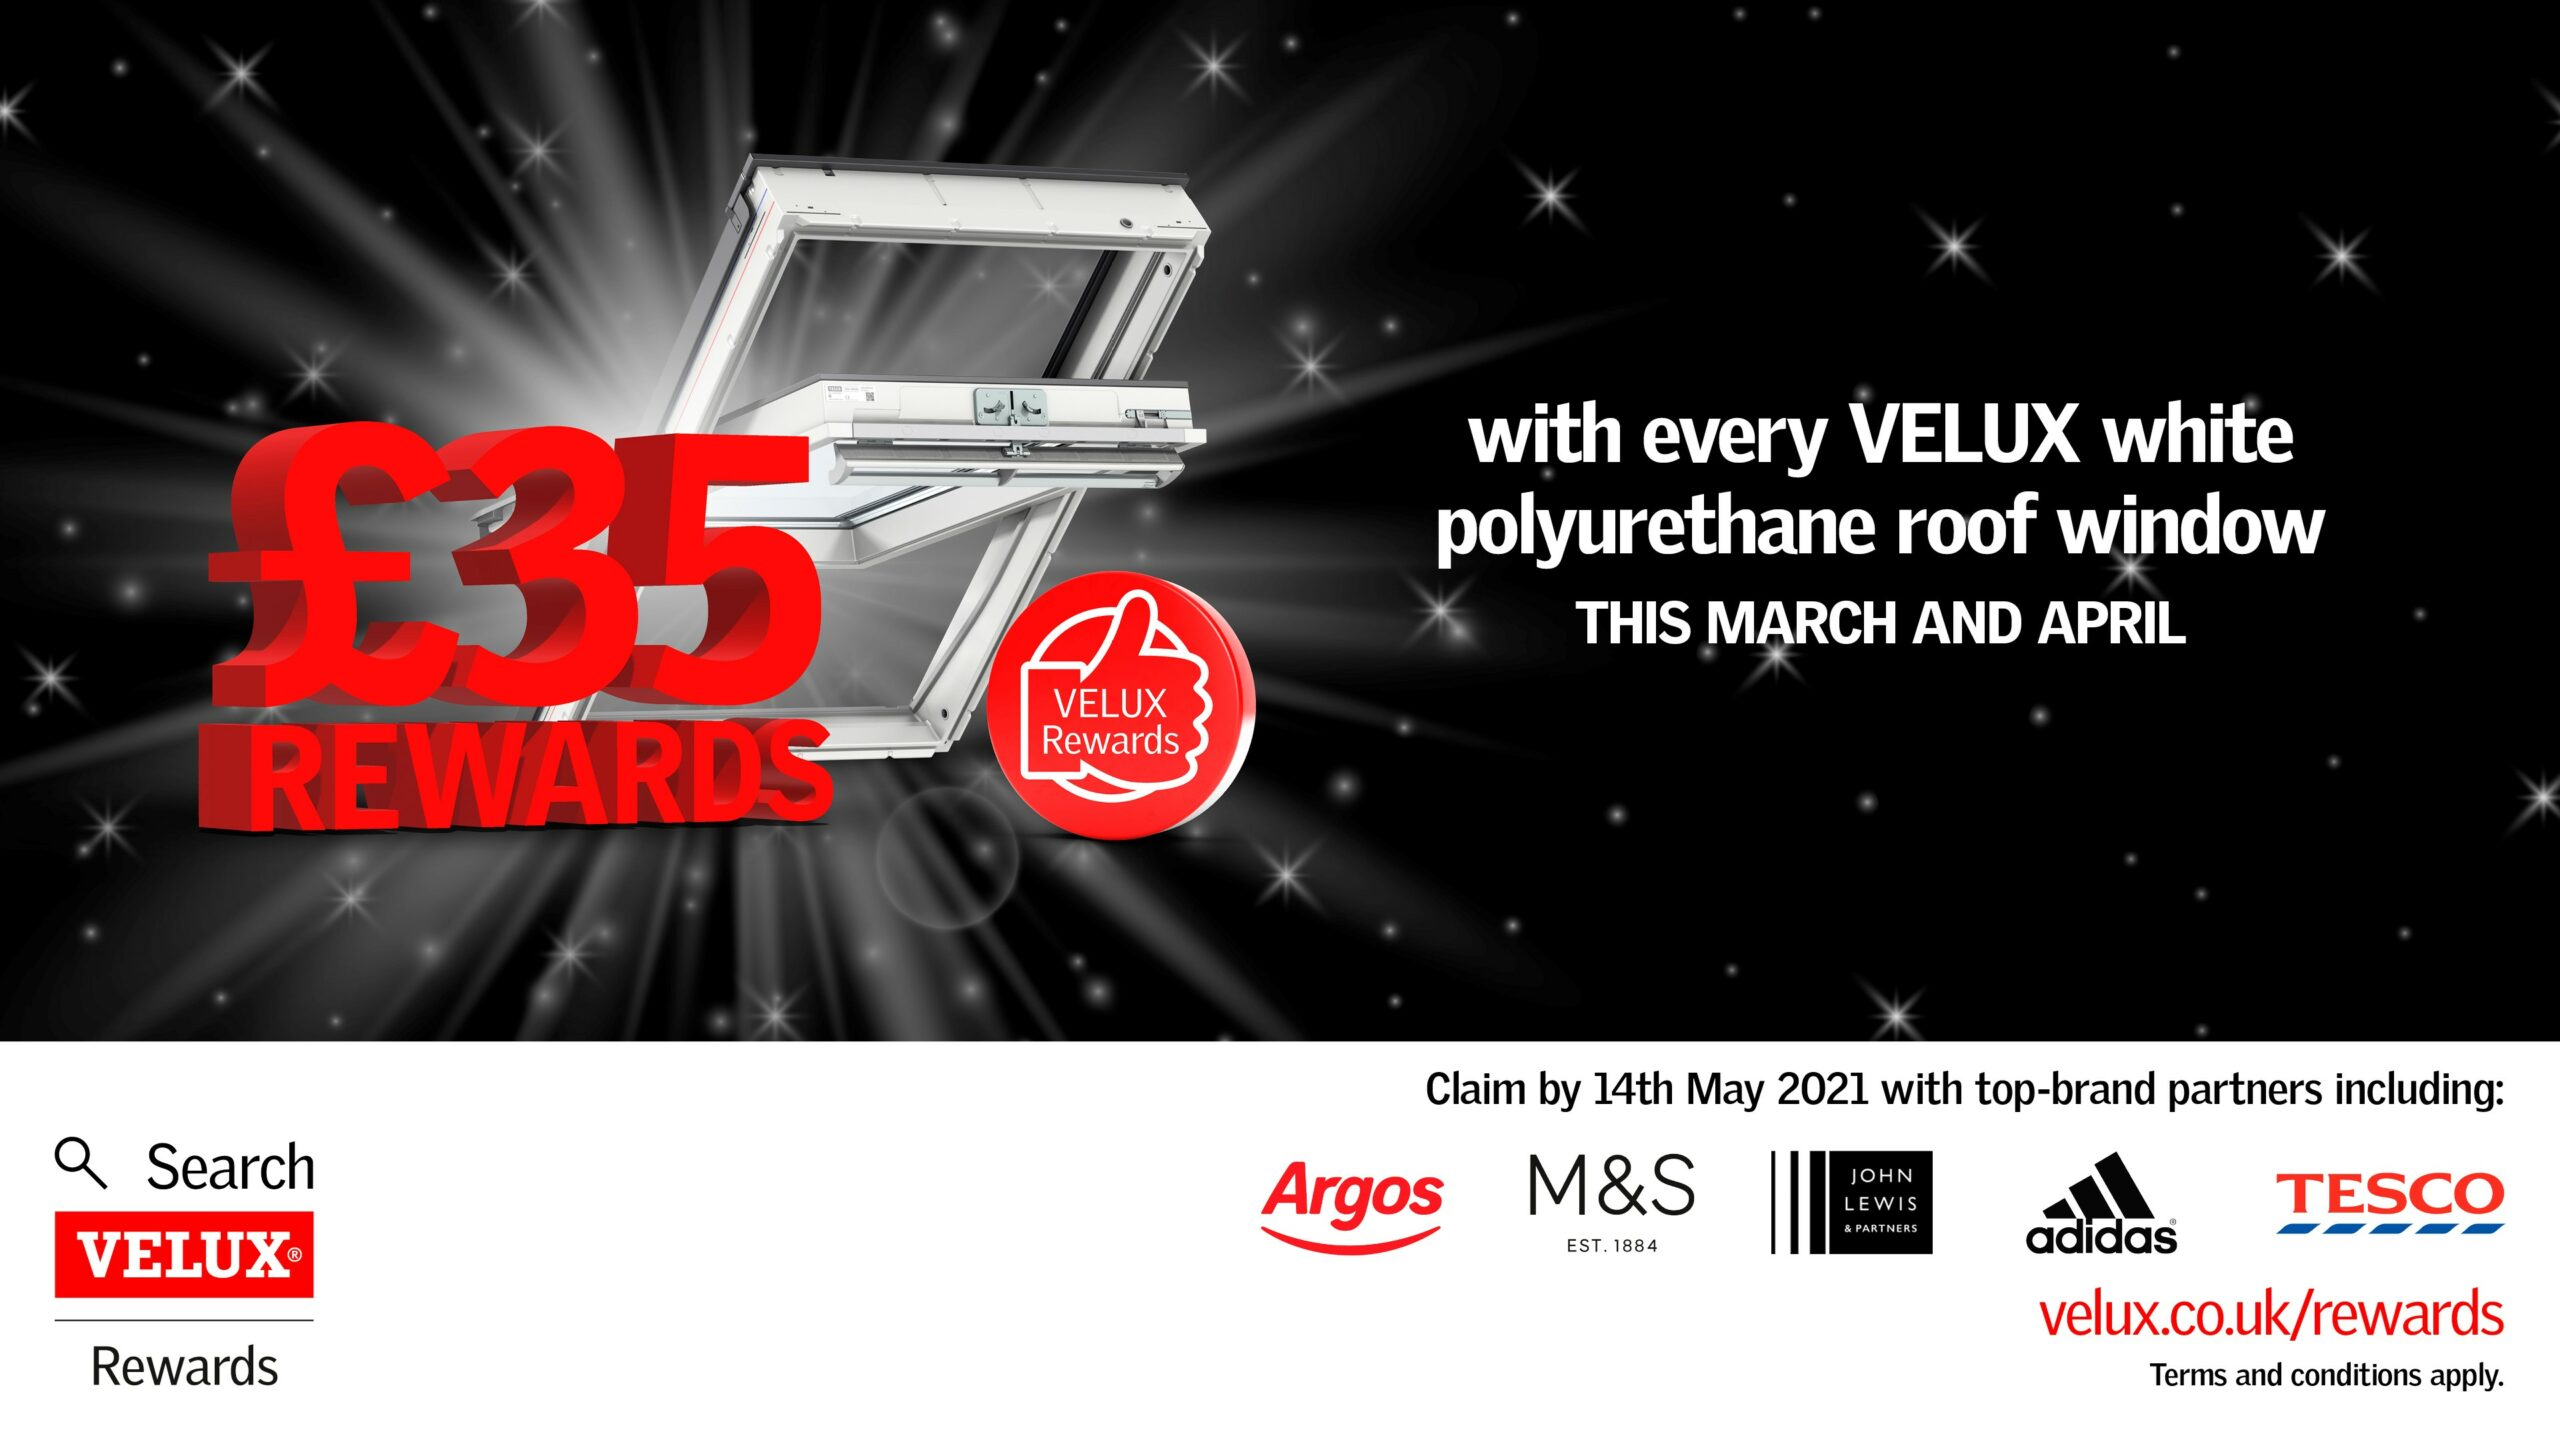 Velux Rewards March - April 2021 £35 Rewards for all Velux Polyurethane Pitched Roof Window purchase